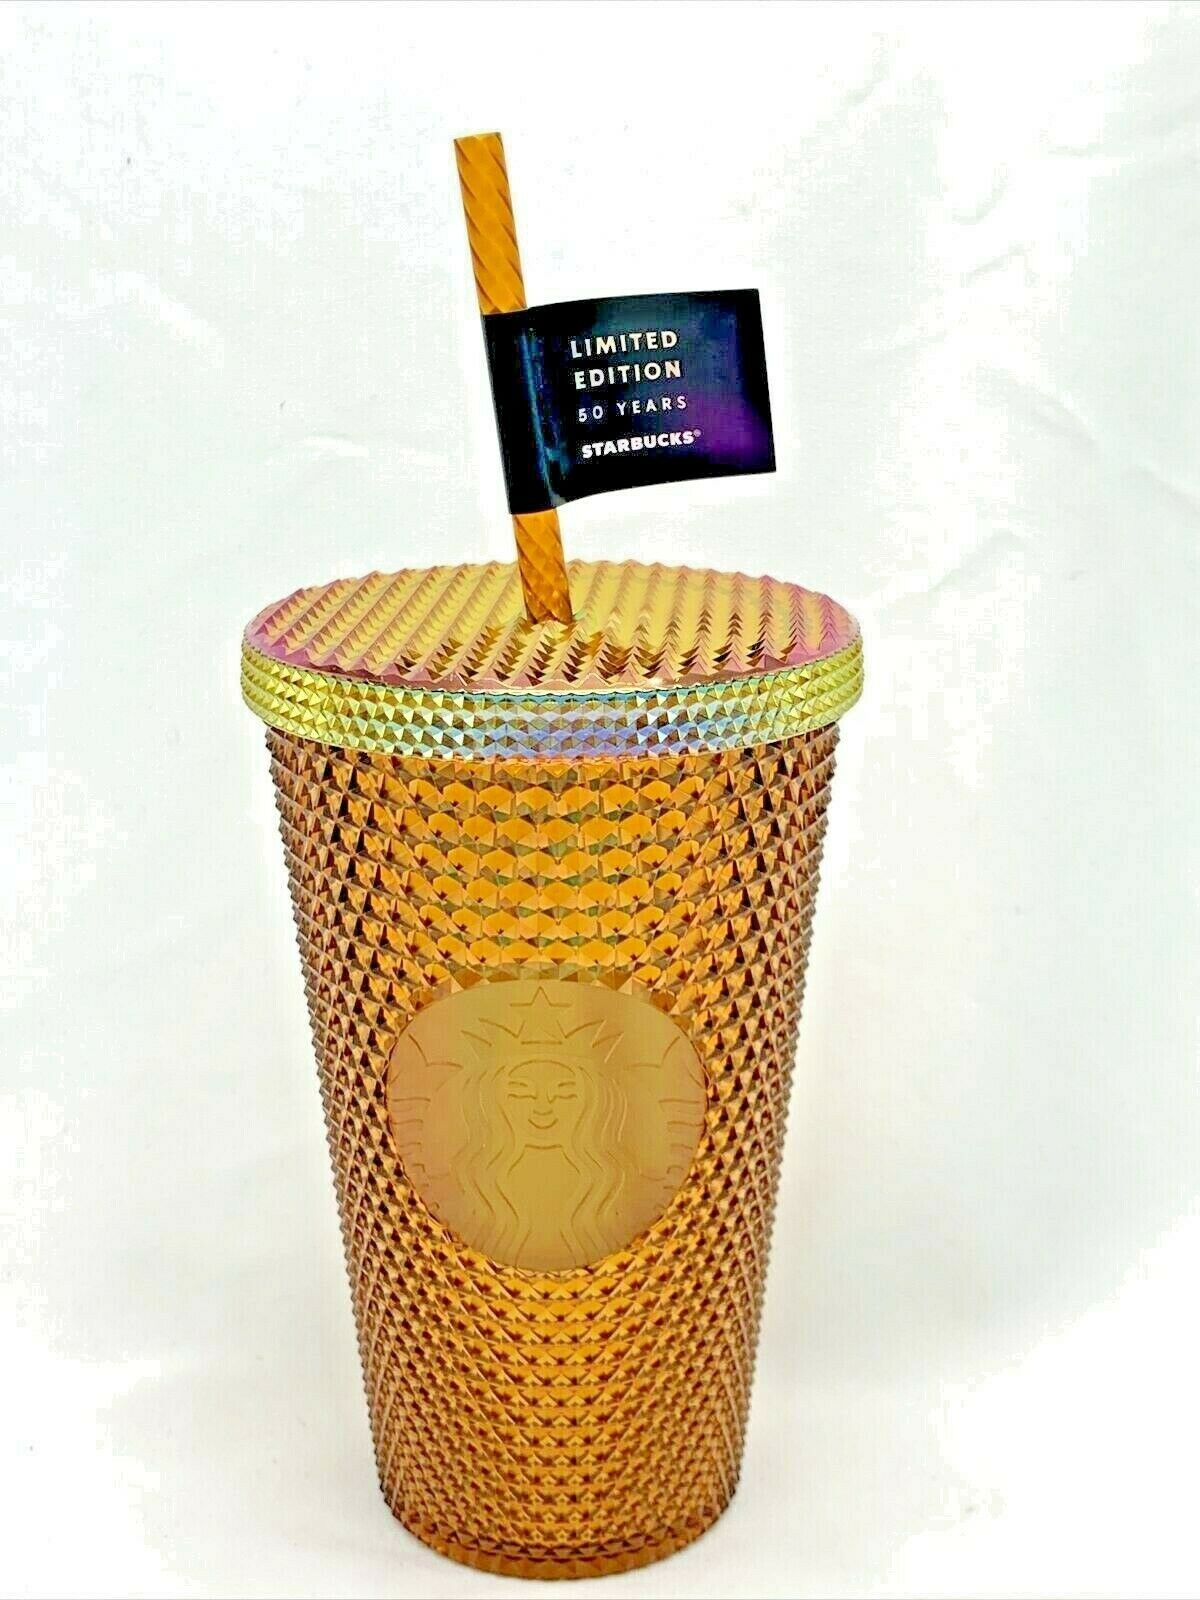 Primary image for Starbucks 2021 Limited Edition 50 Years Copper Iridescent Studded 16oz Tumbler